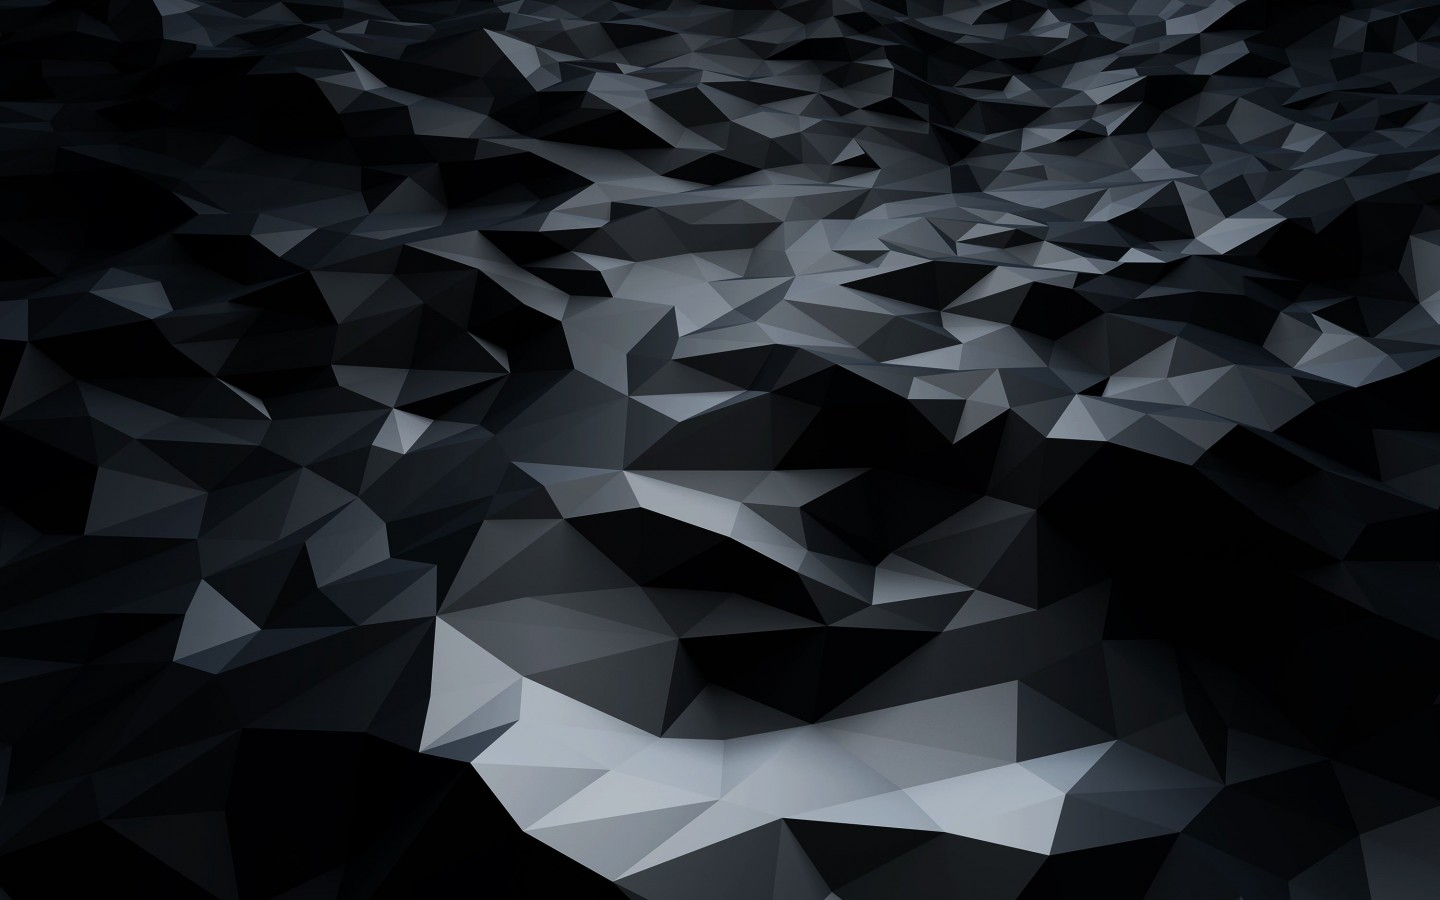 Abstract Black Low Poly Wallpaper for Desktop 1440x900